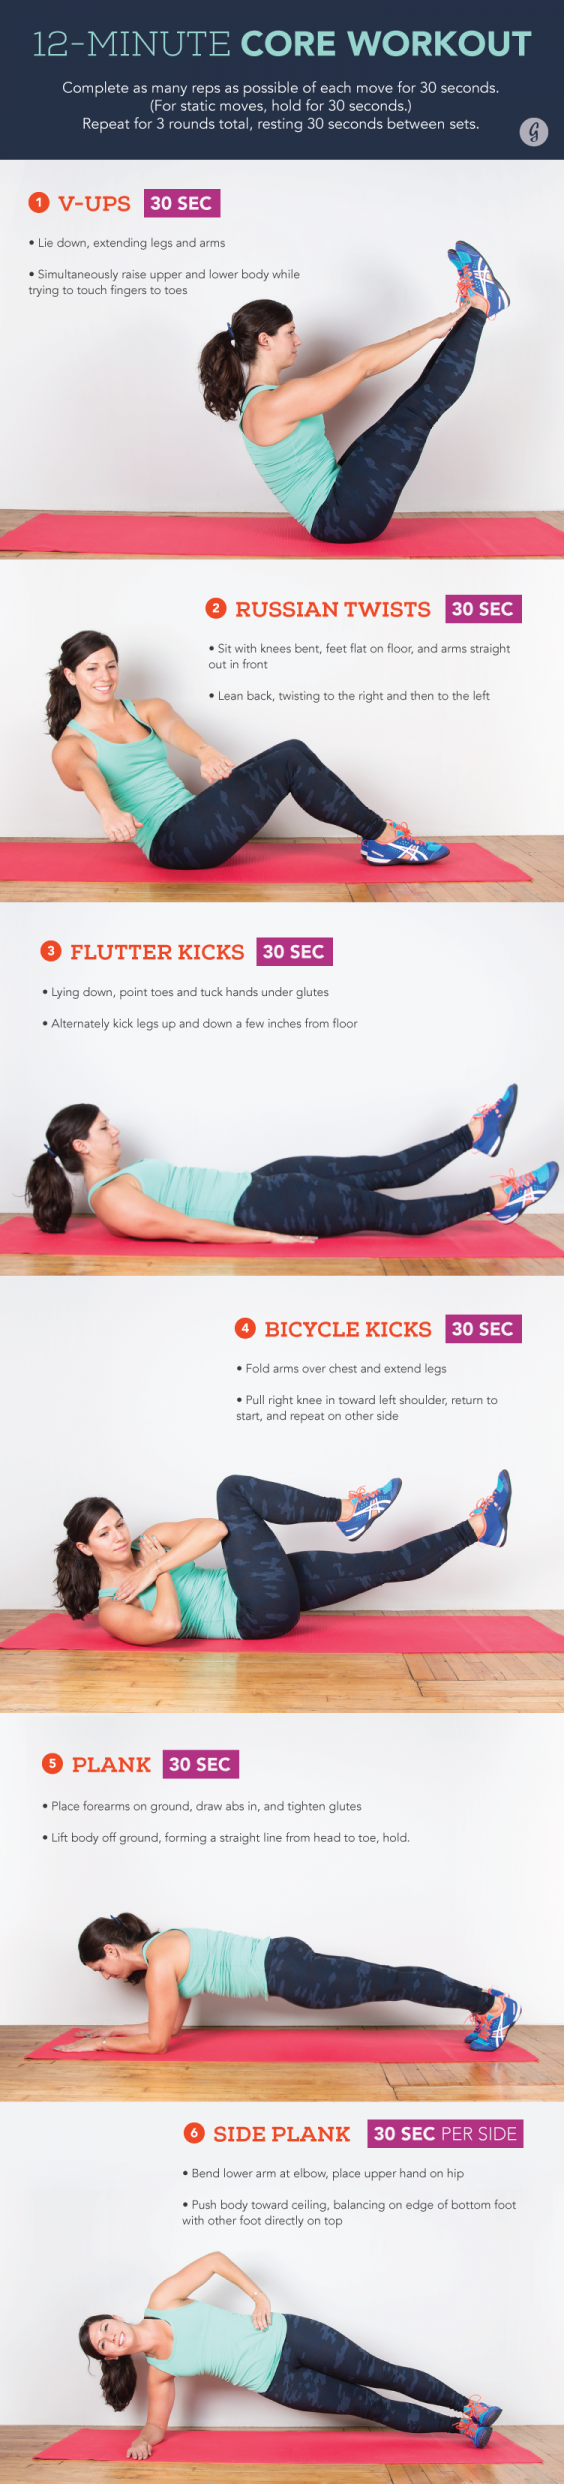 12 Minute Core Workout